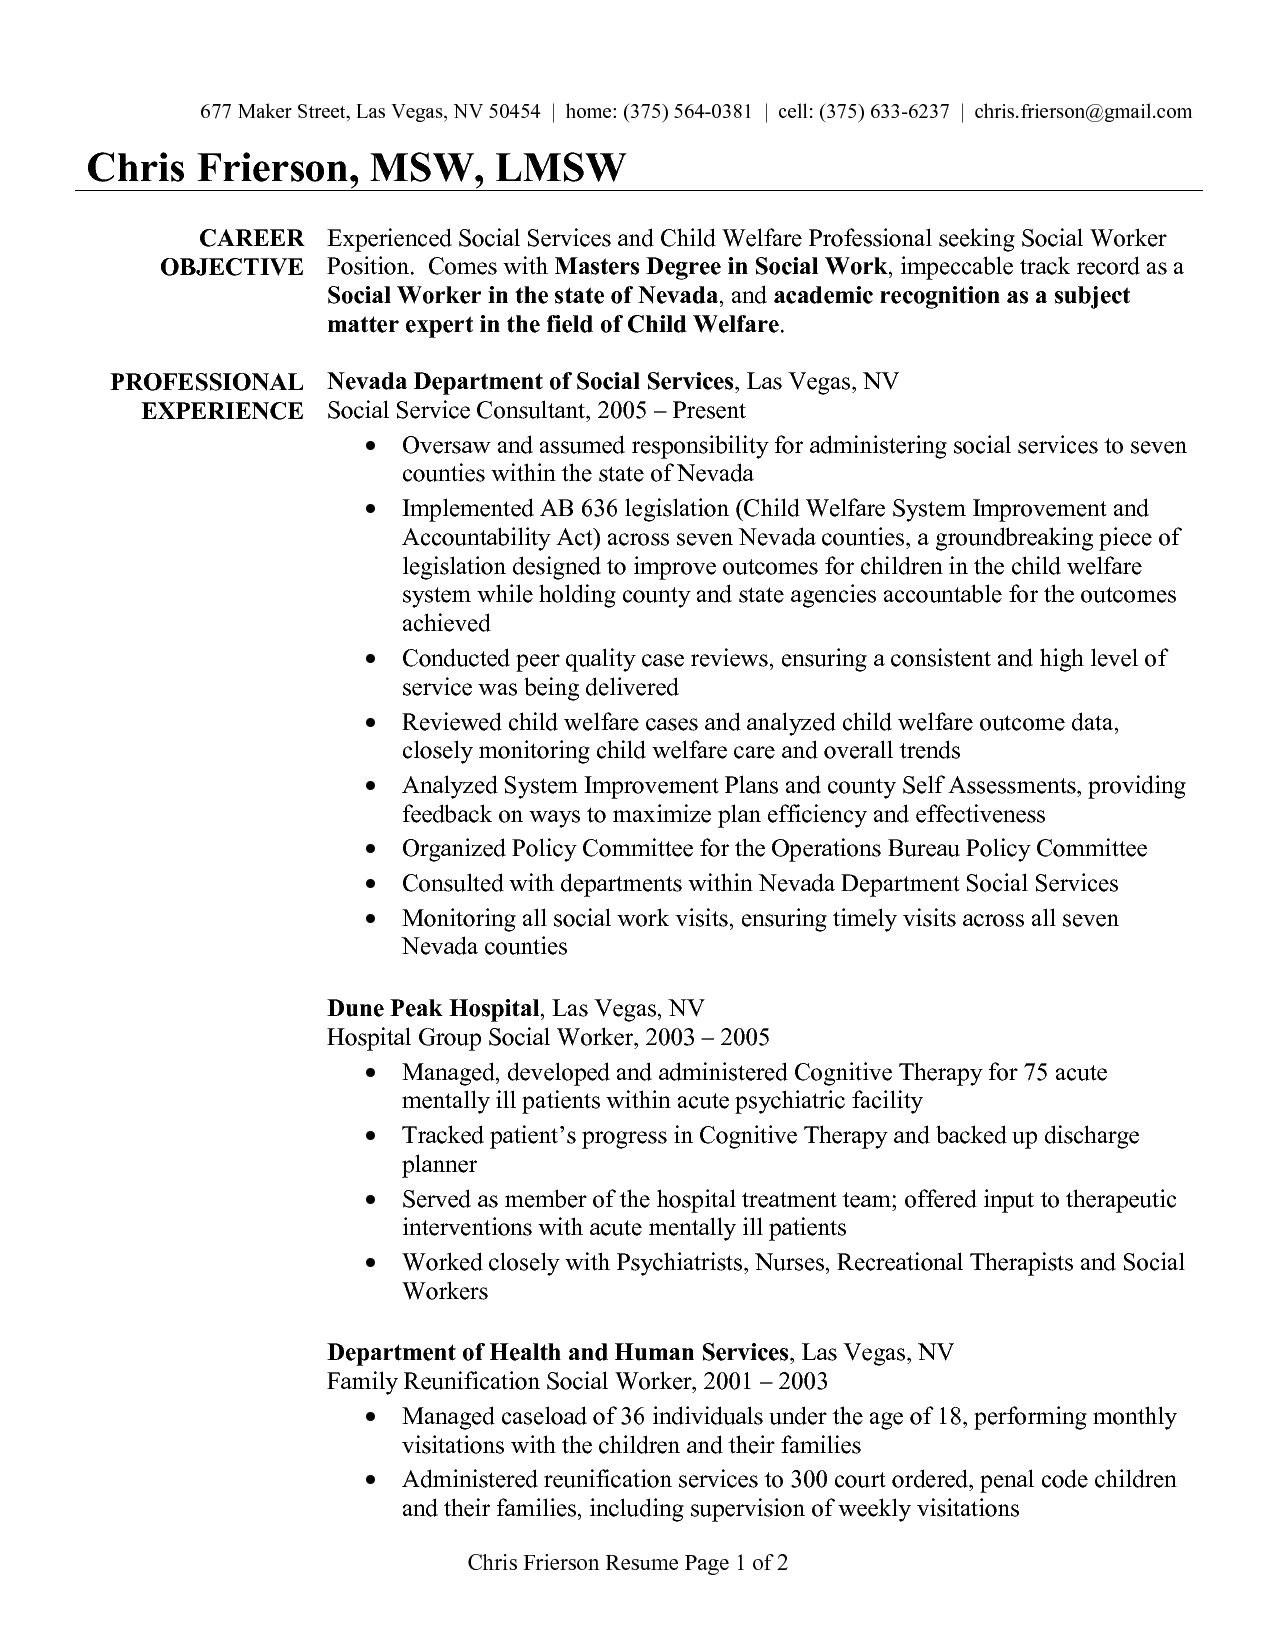 Best Resume Examples Endearing Social Work Resume Examples  Social Worker Resume Sample  Projects